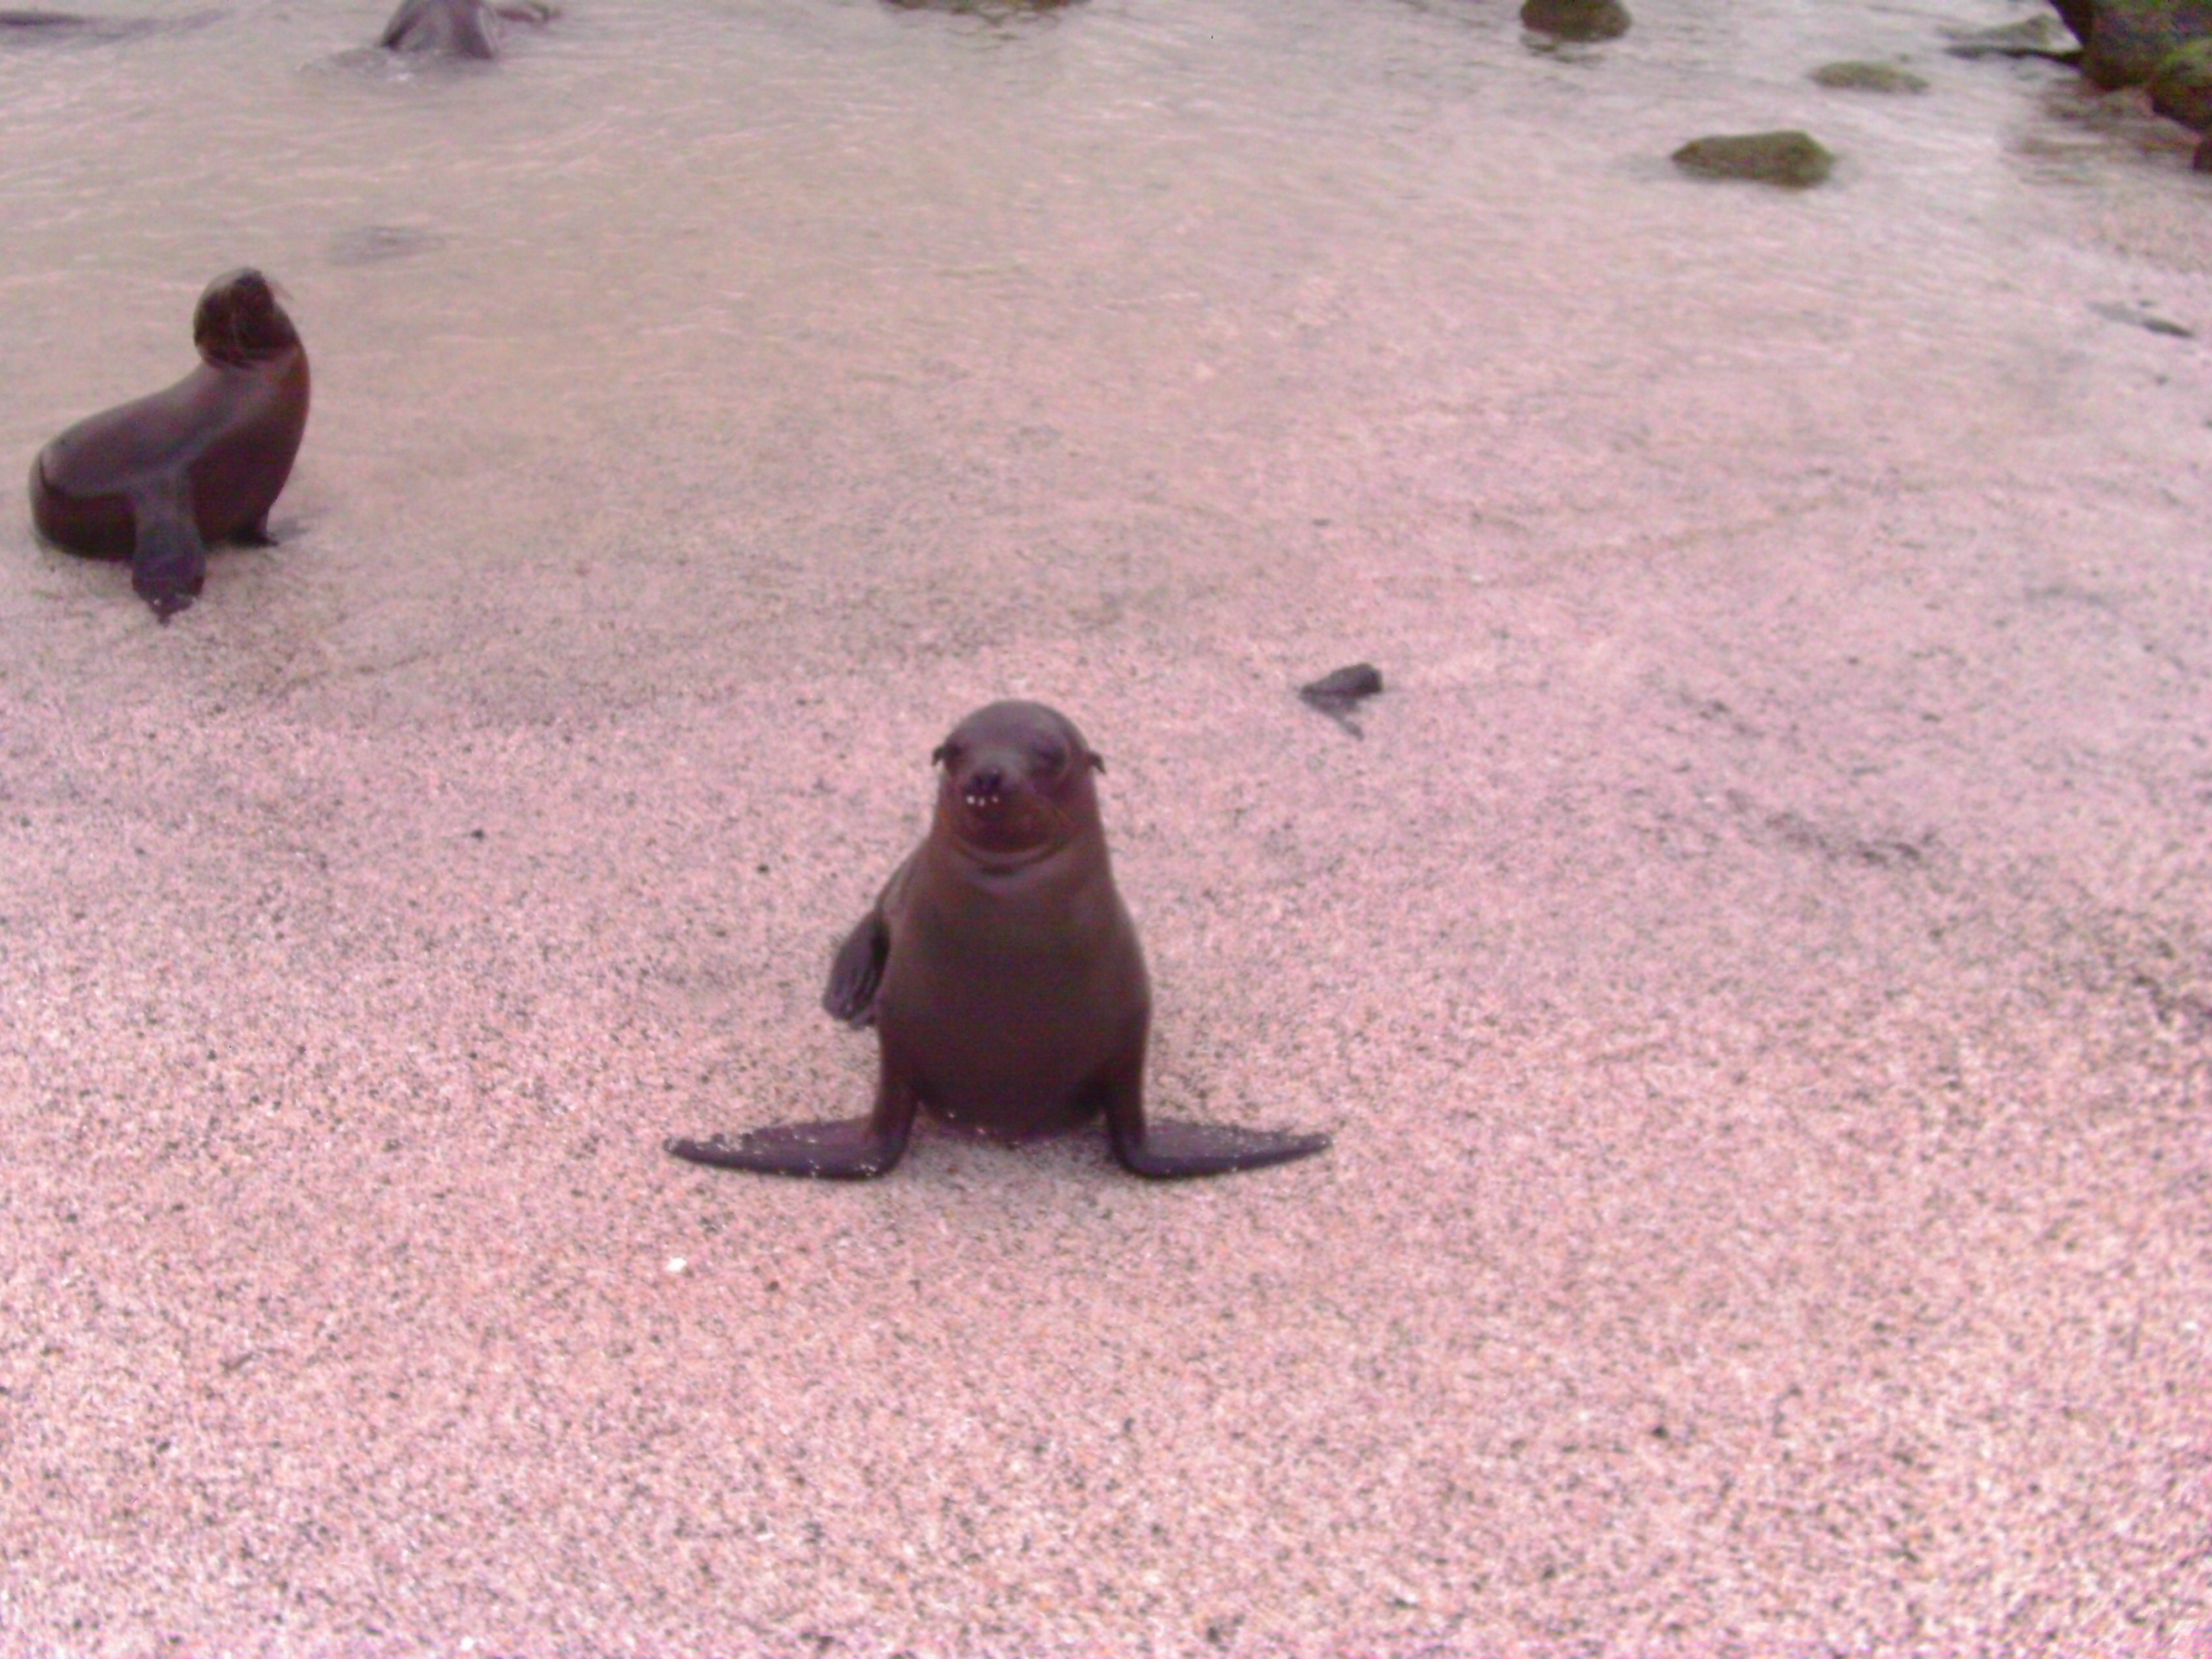 In Galapagos, the animals aren't afraid of humans. Photo credit: L. Tripoli